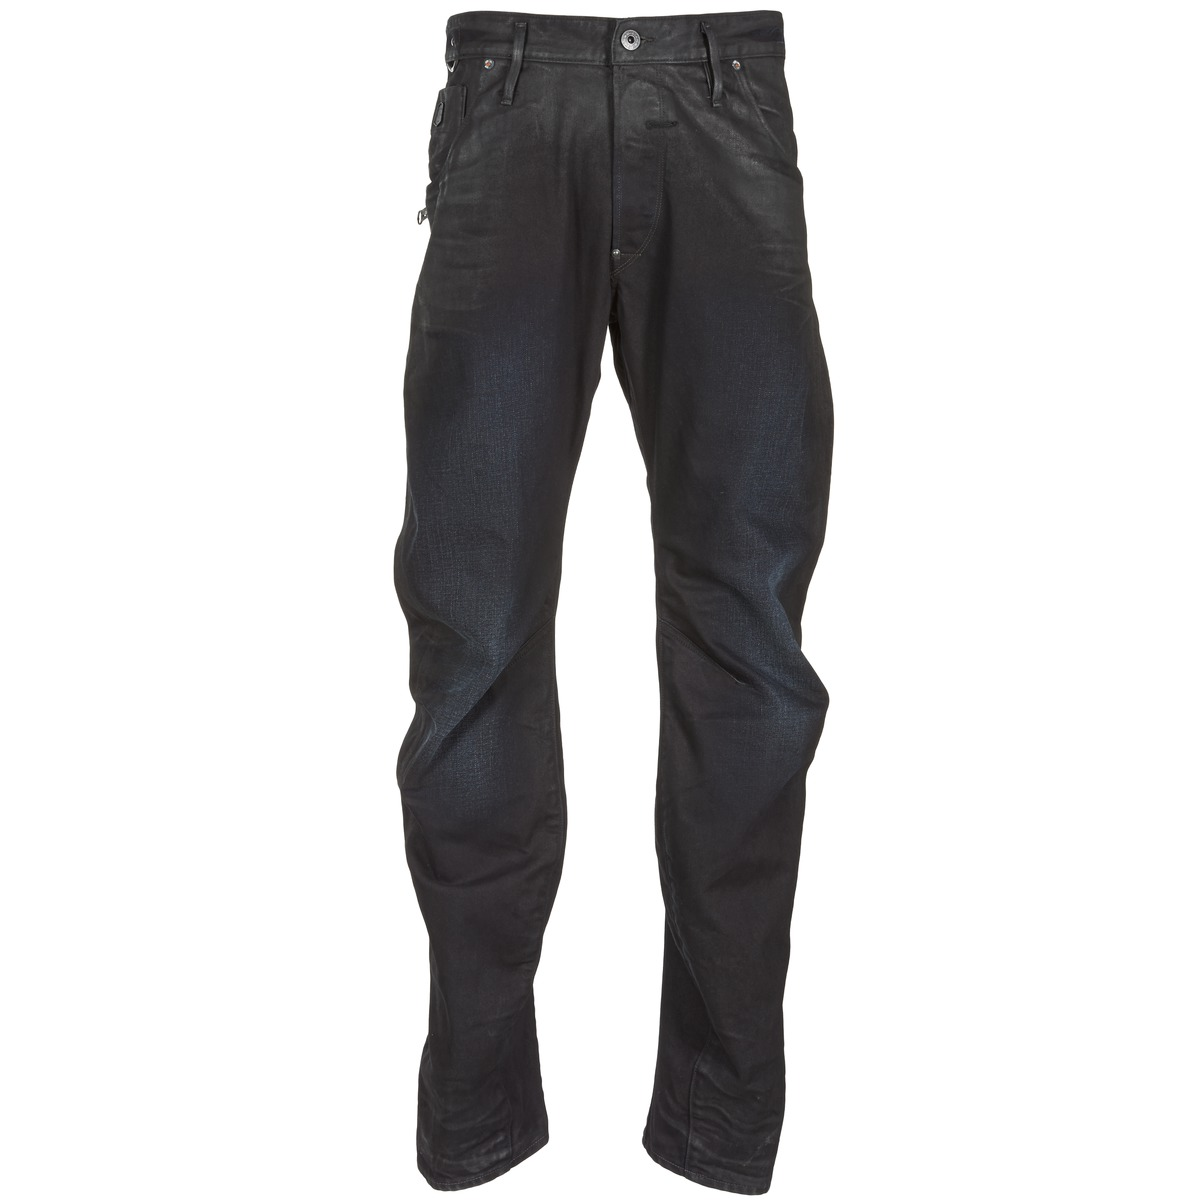 G-Star Raw NEW ARC ZIP 3D Schwarz